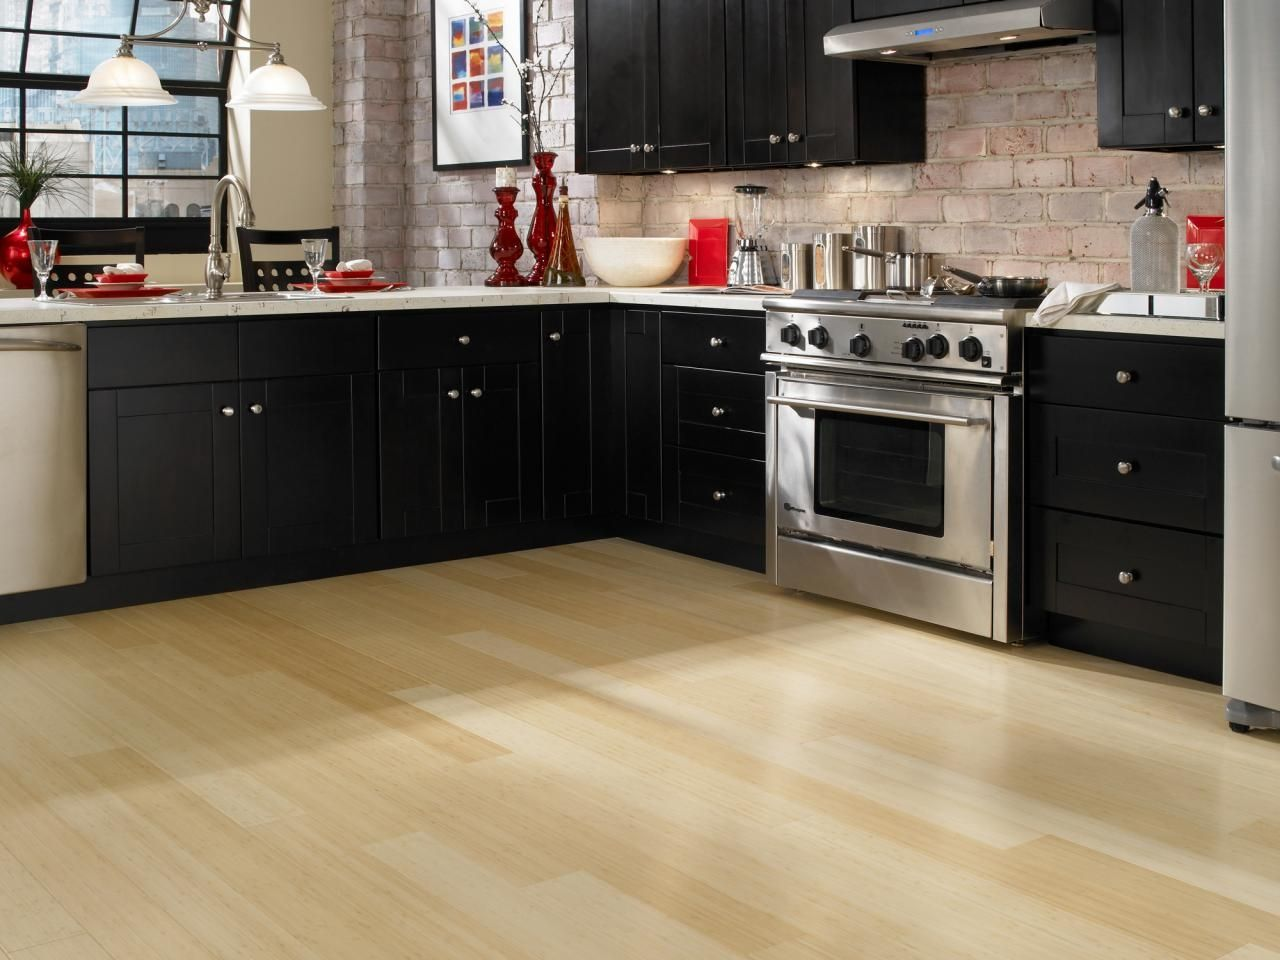 Bamboo Flooring Good For Kitchens